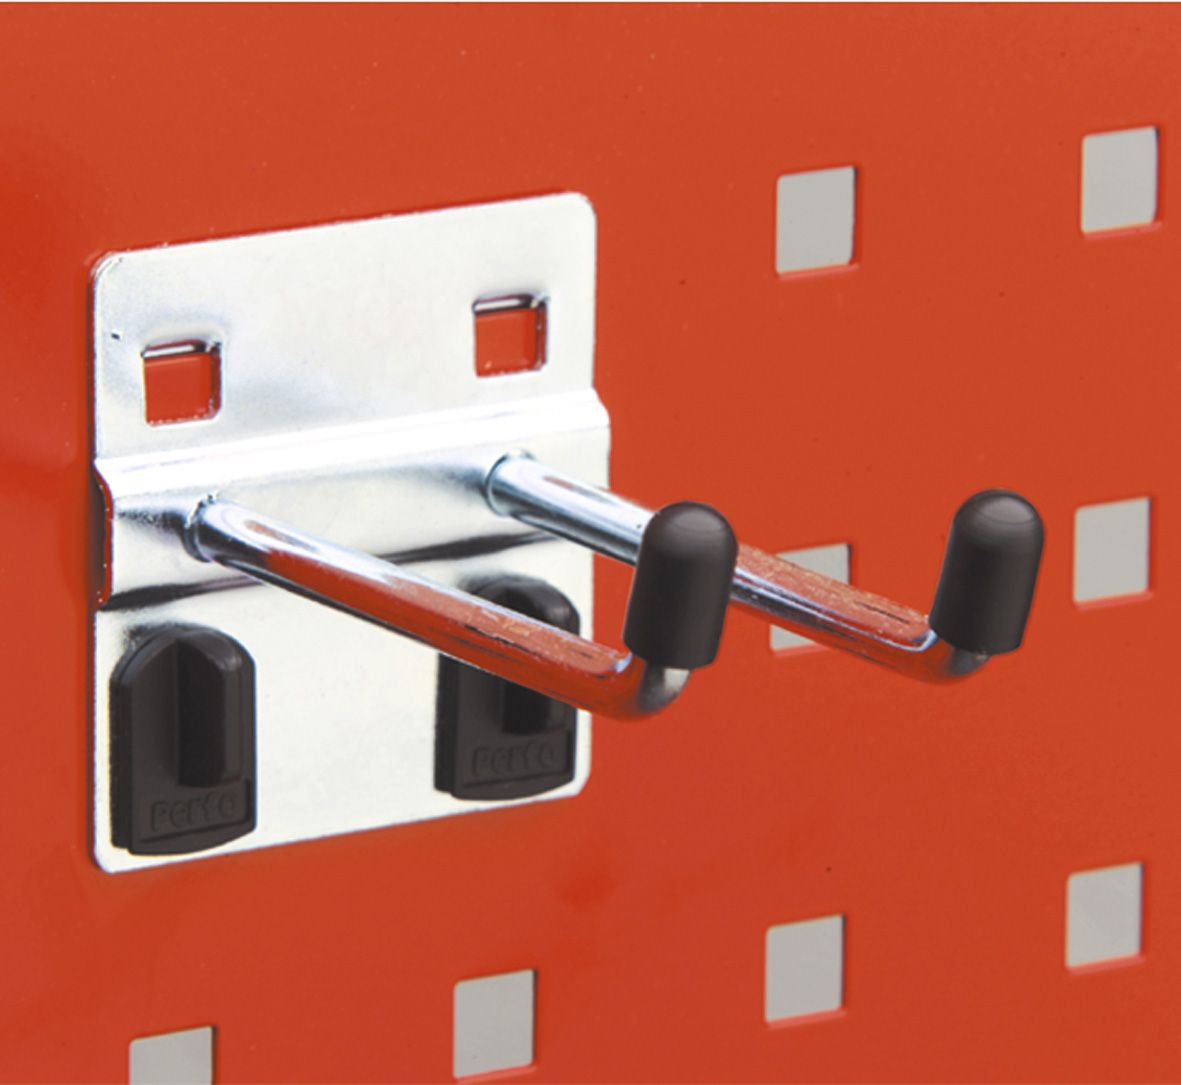 Sealey PerfoTool Storage Panel Hooks Clips & Accessories